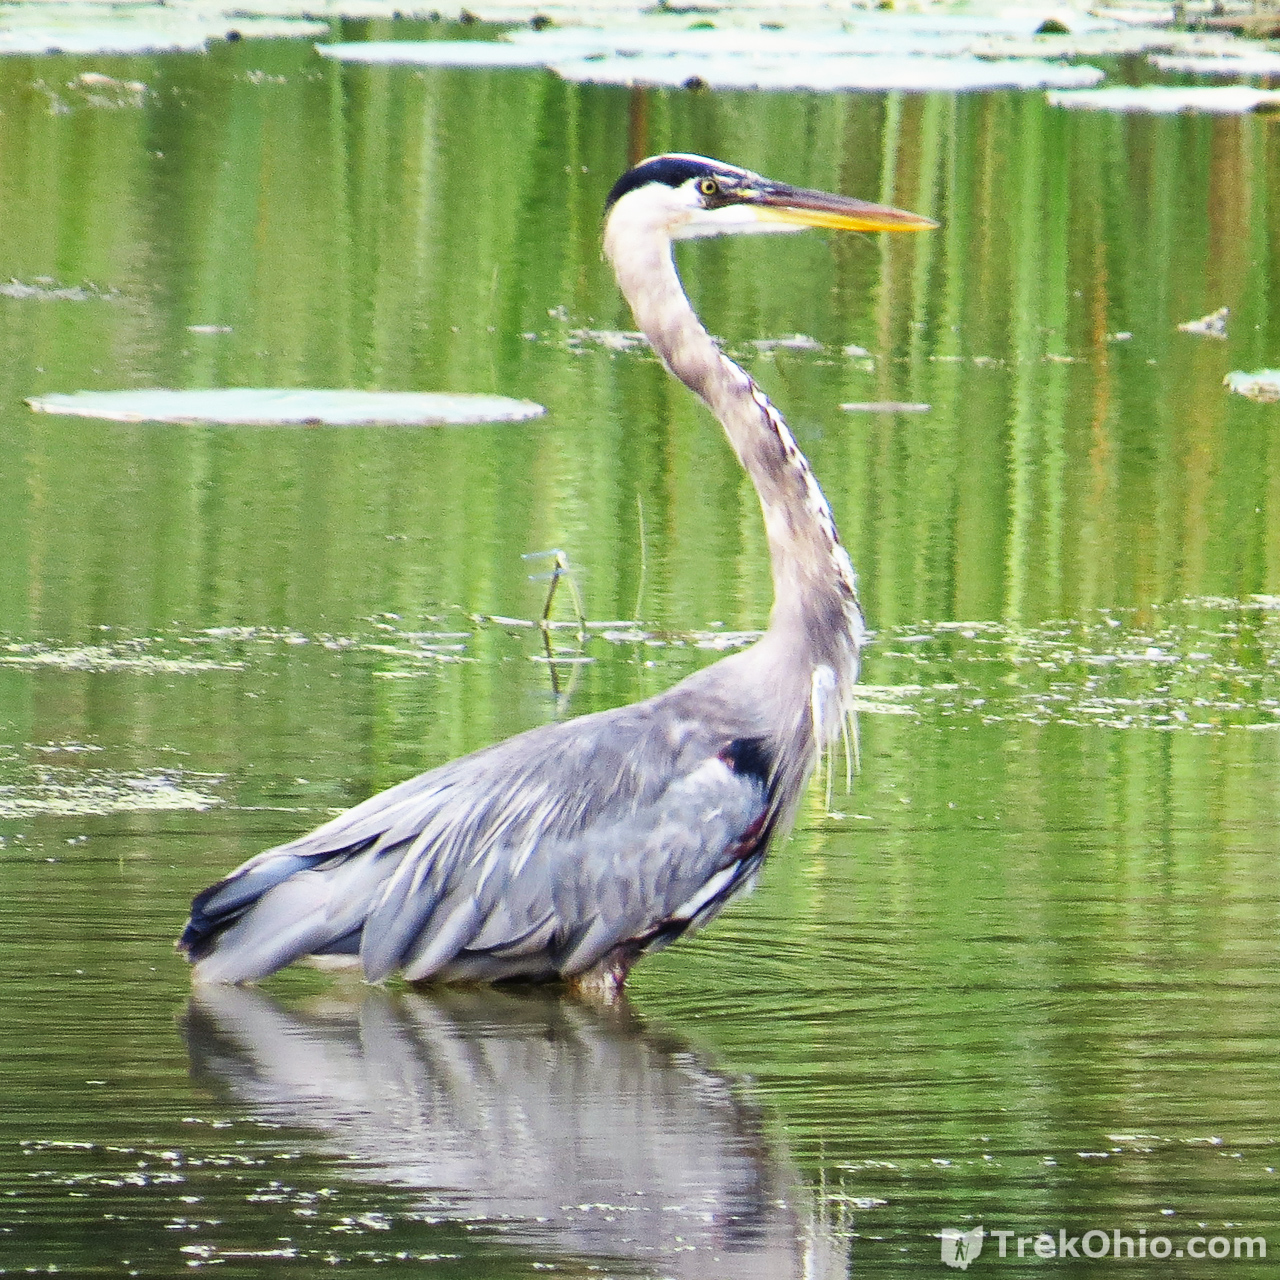 Great Blue Heron (Ardea herodias), photgraphed from the observation deck.